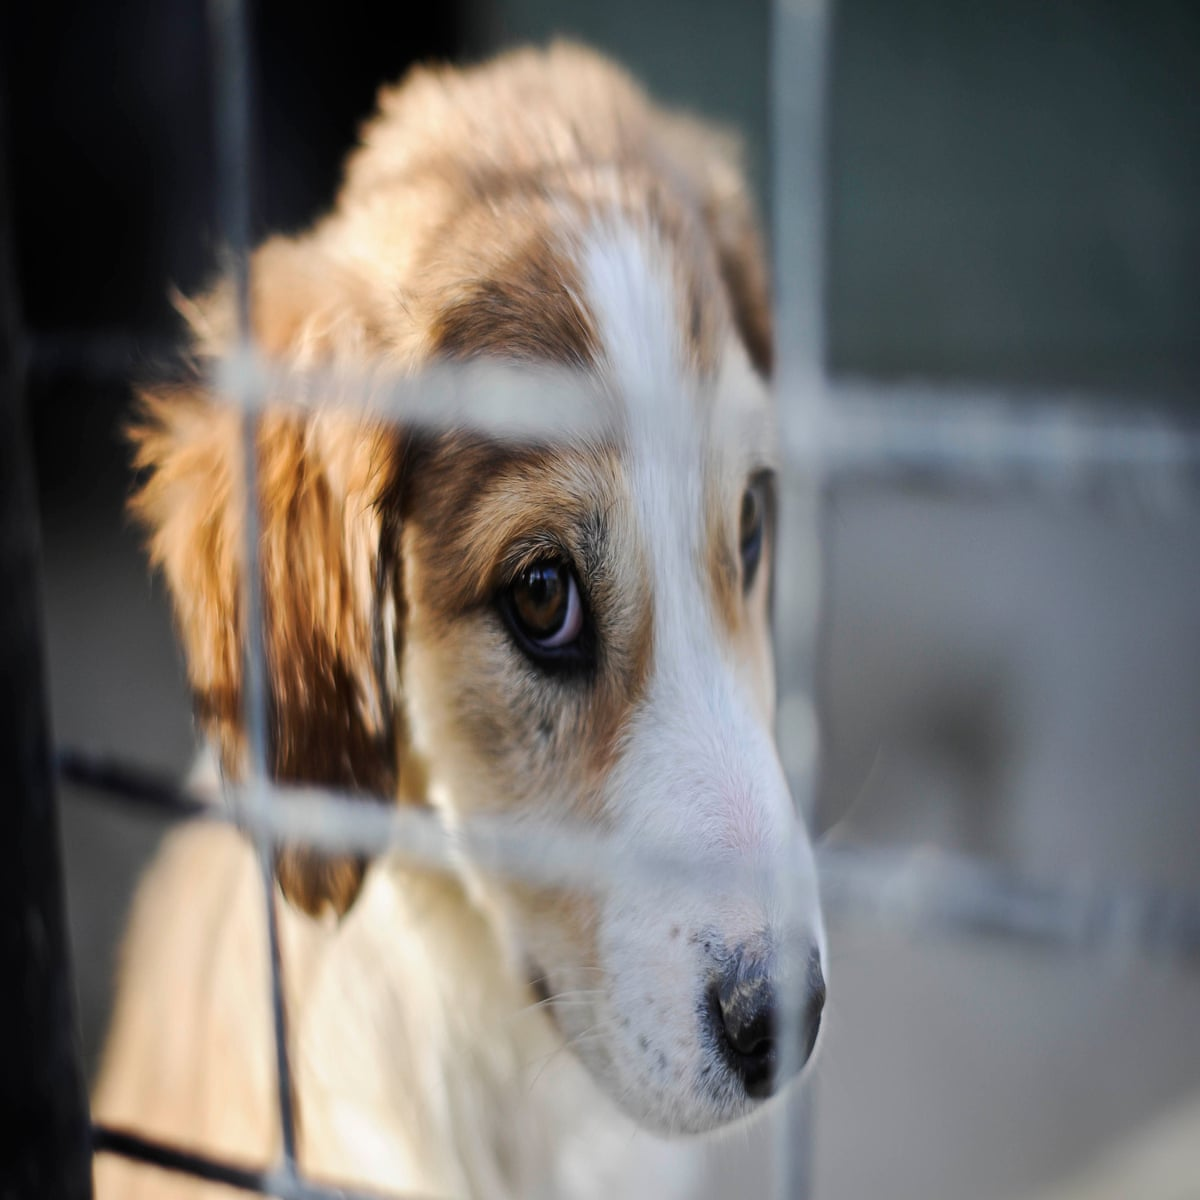 British Pet Shops To Be Banned From Selling Puppies And Kittens